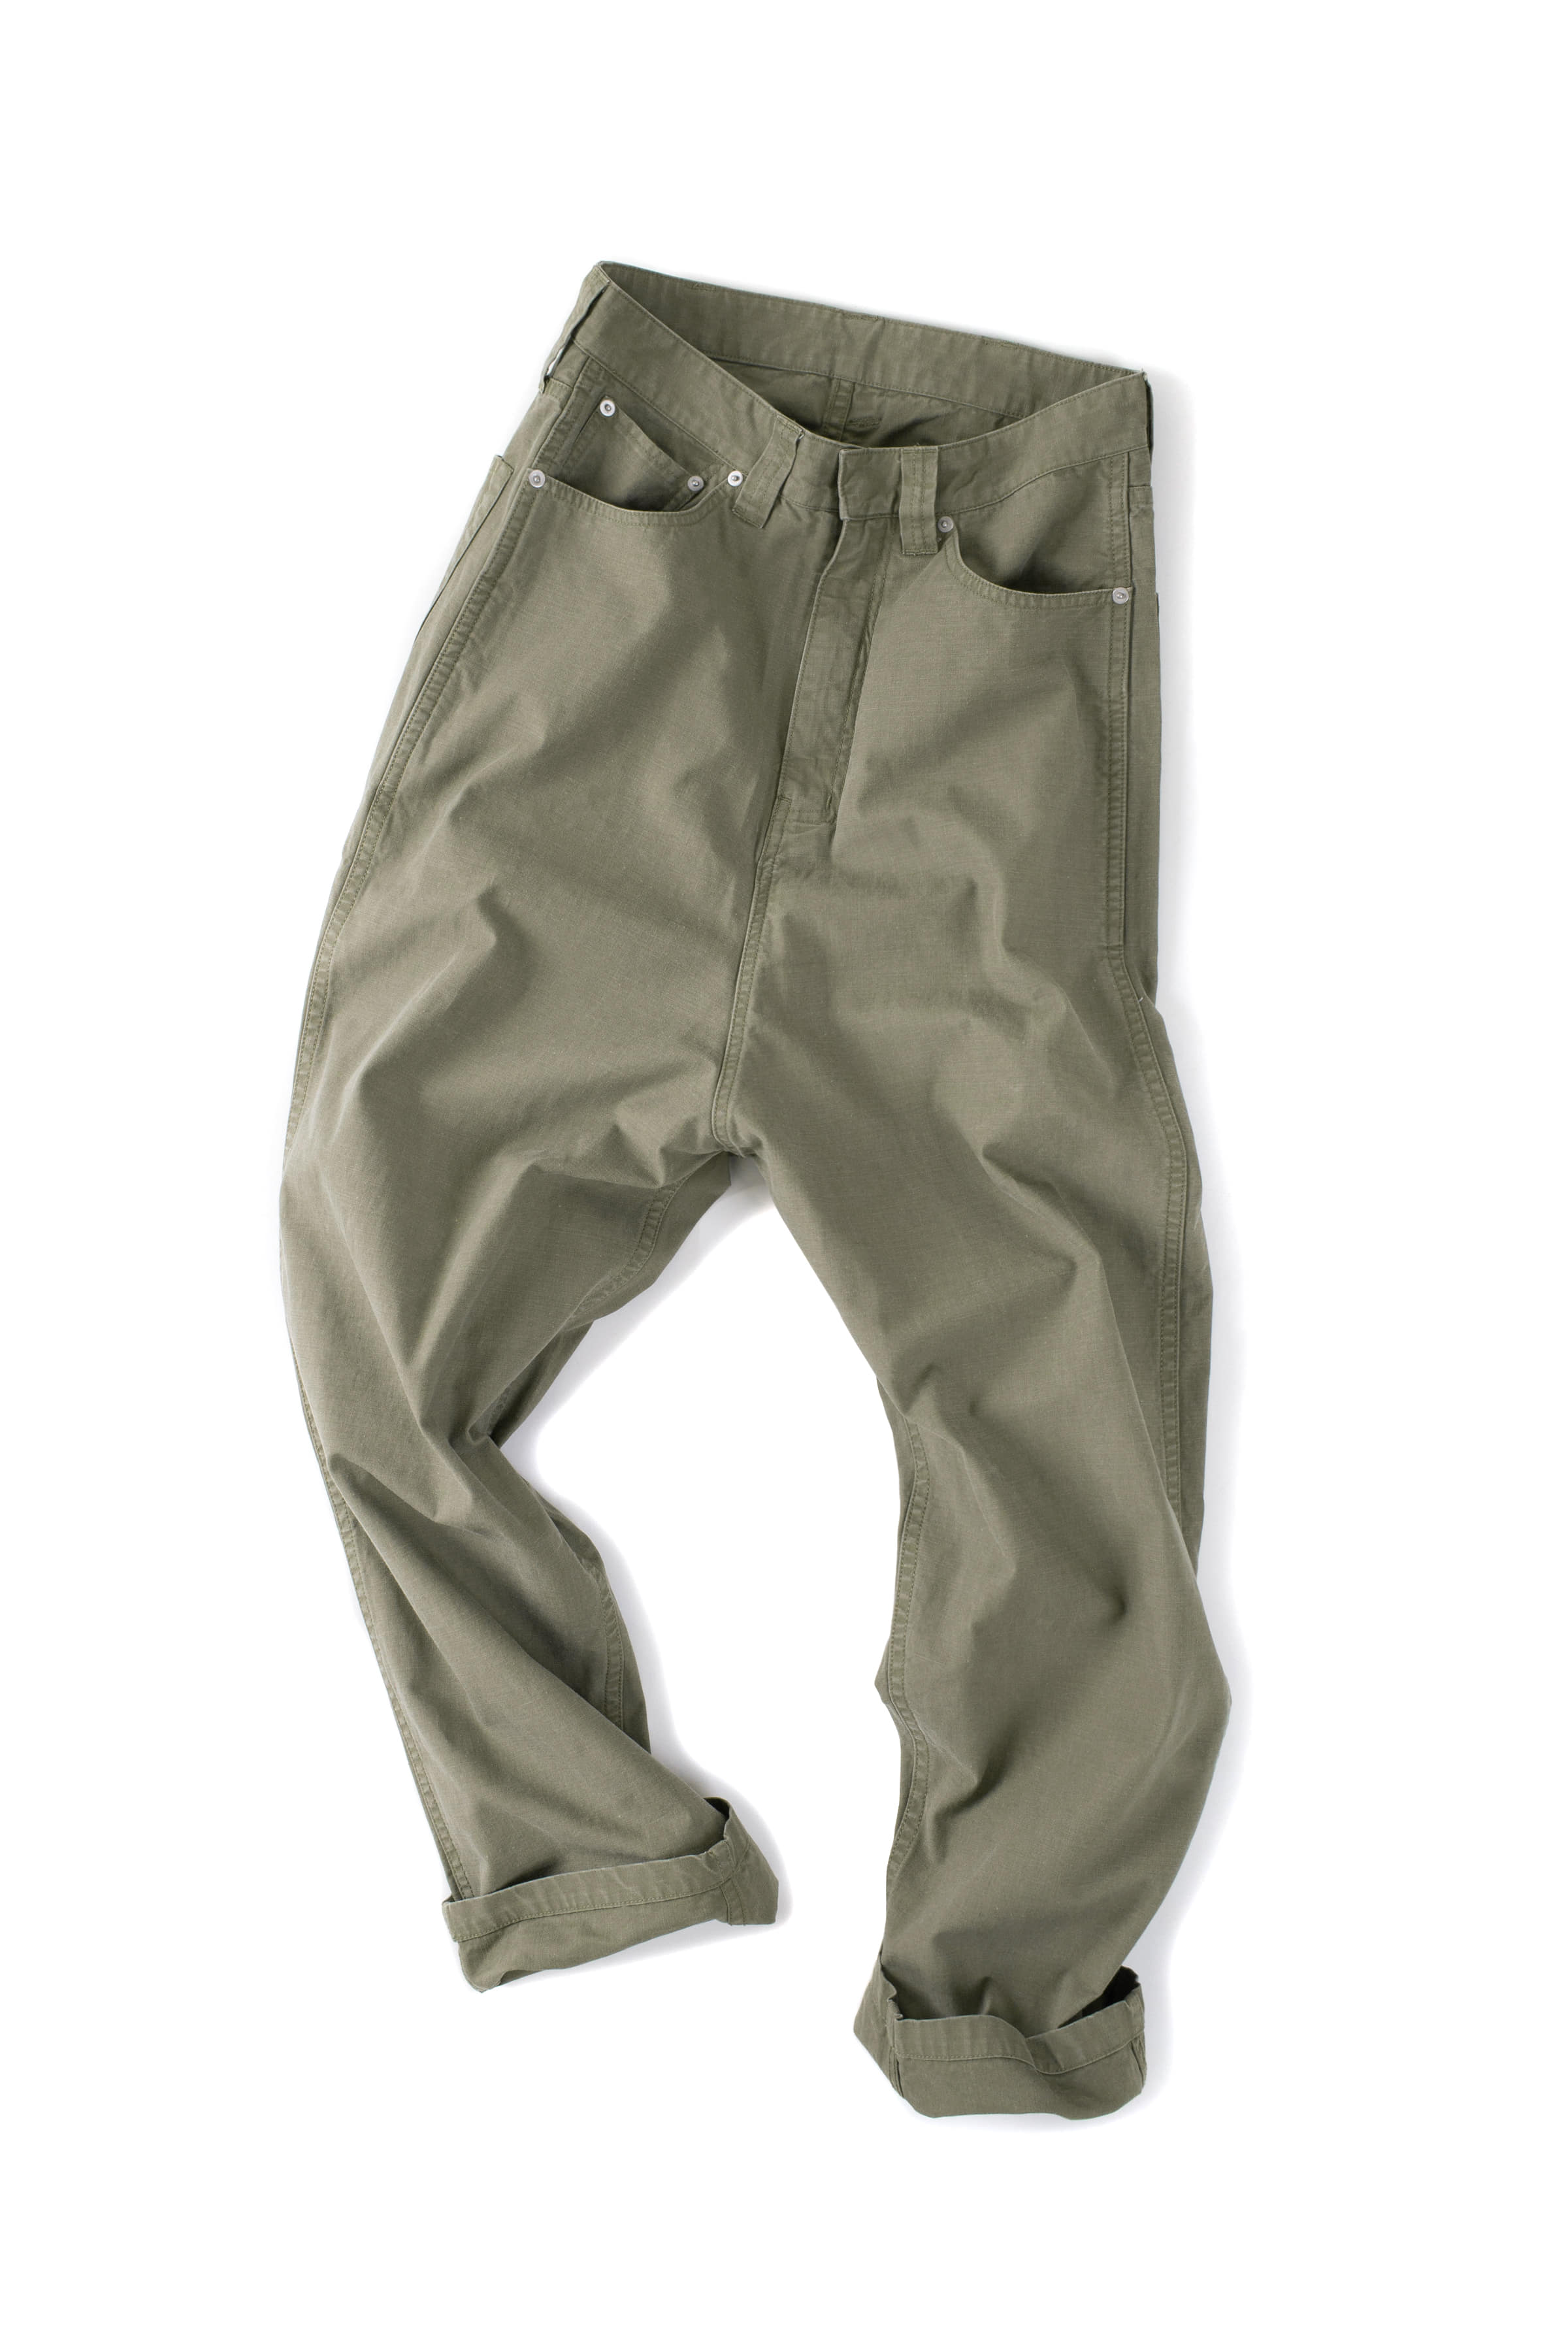 CLAMP : Crown Denim Pants (Olive)